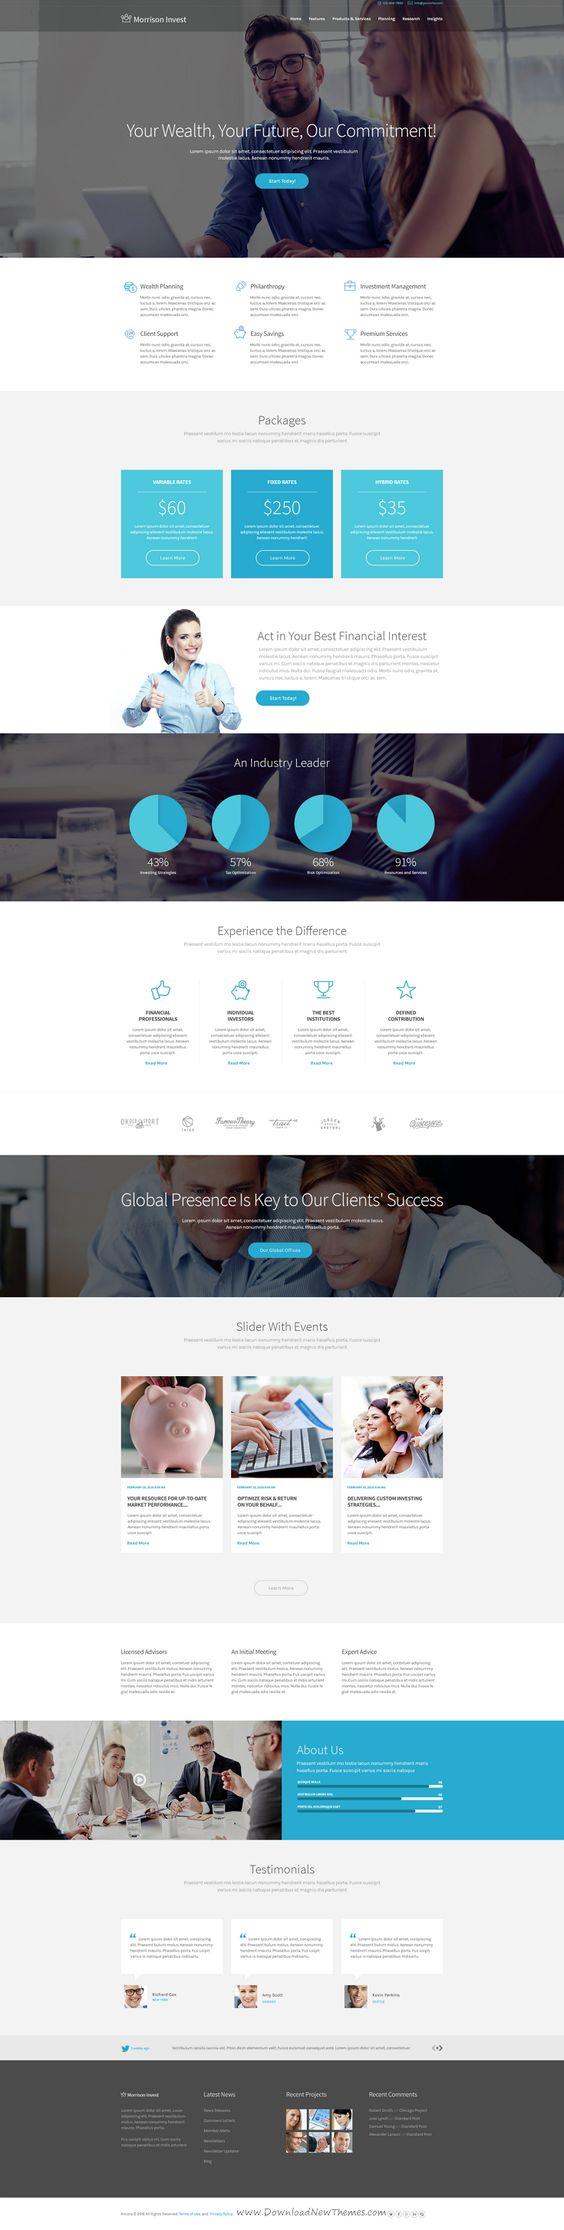 Investments, Business & Financial Advisor WP Theme Check out http://www.imedia.click for more amazing info on all things effective online marketing